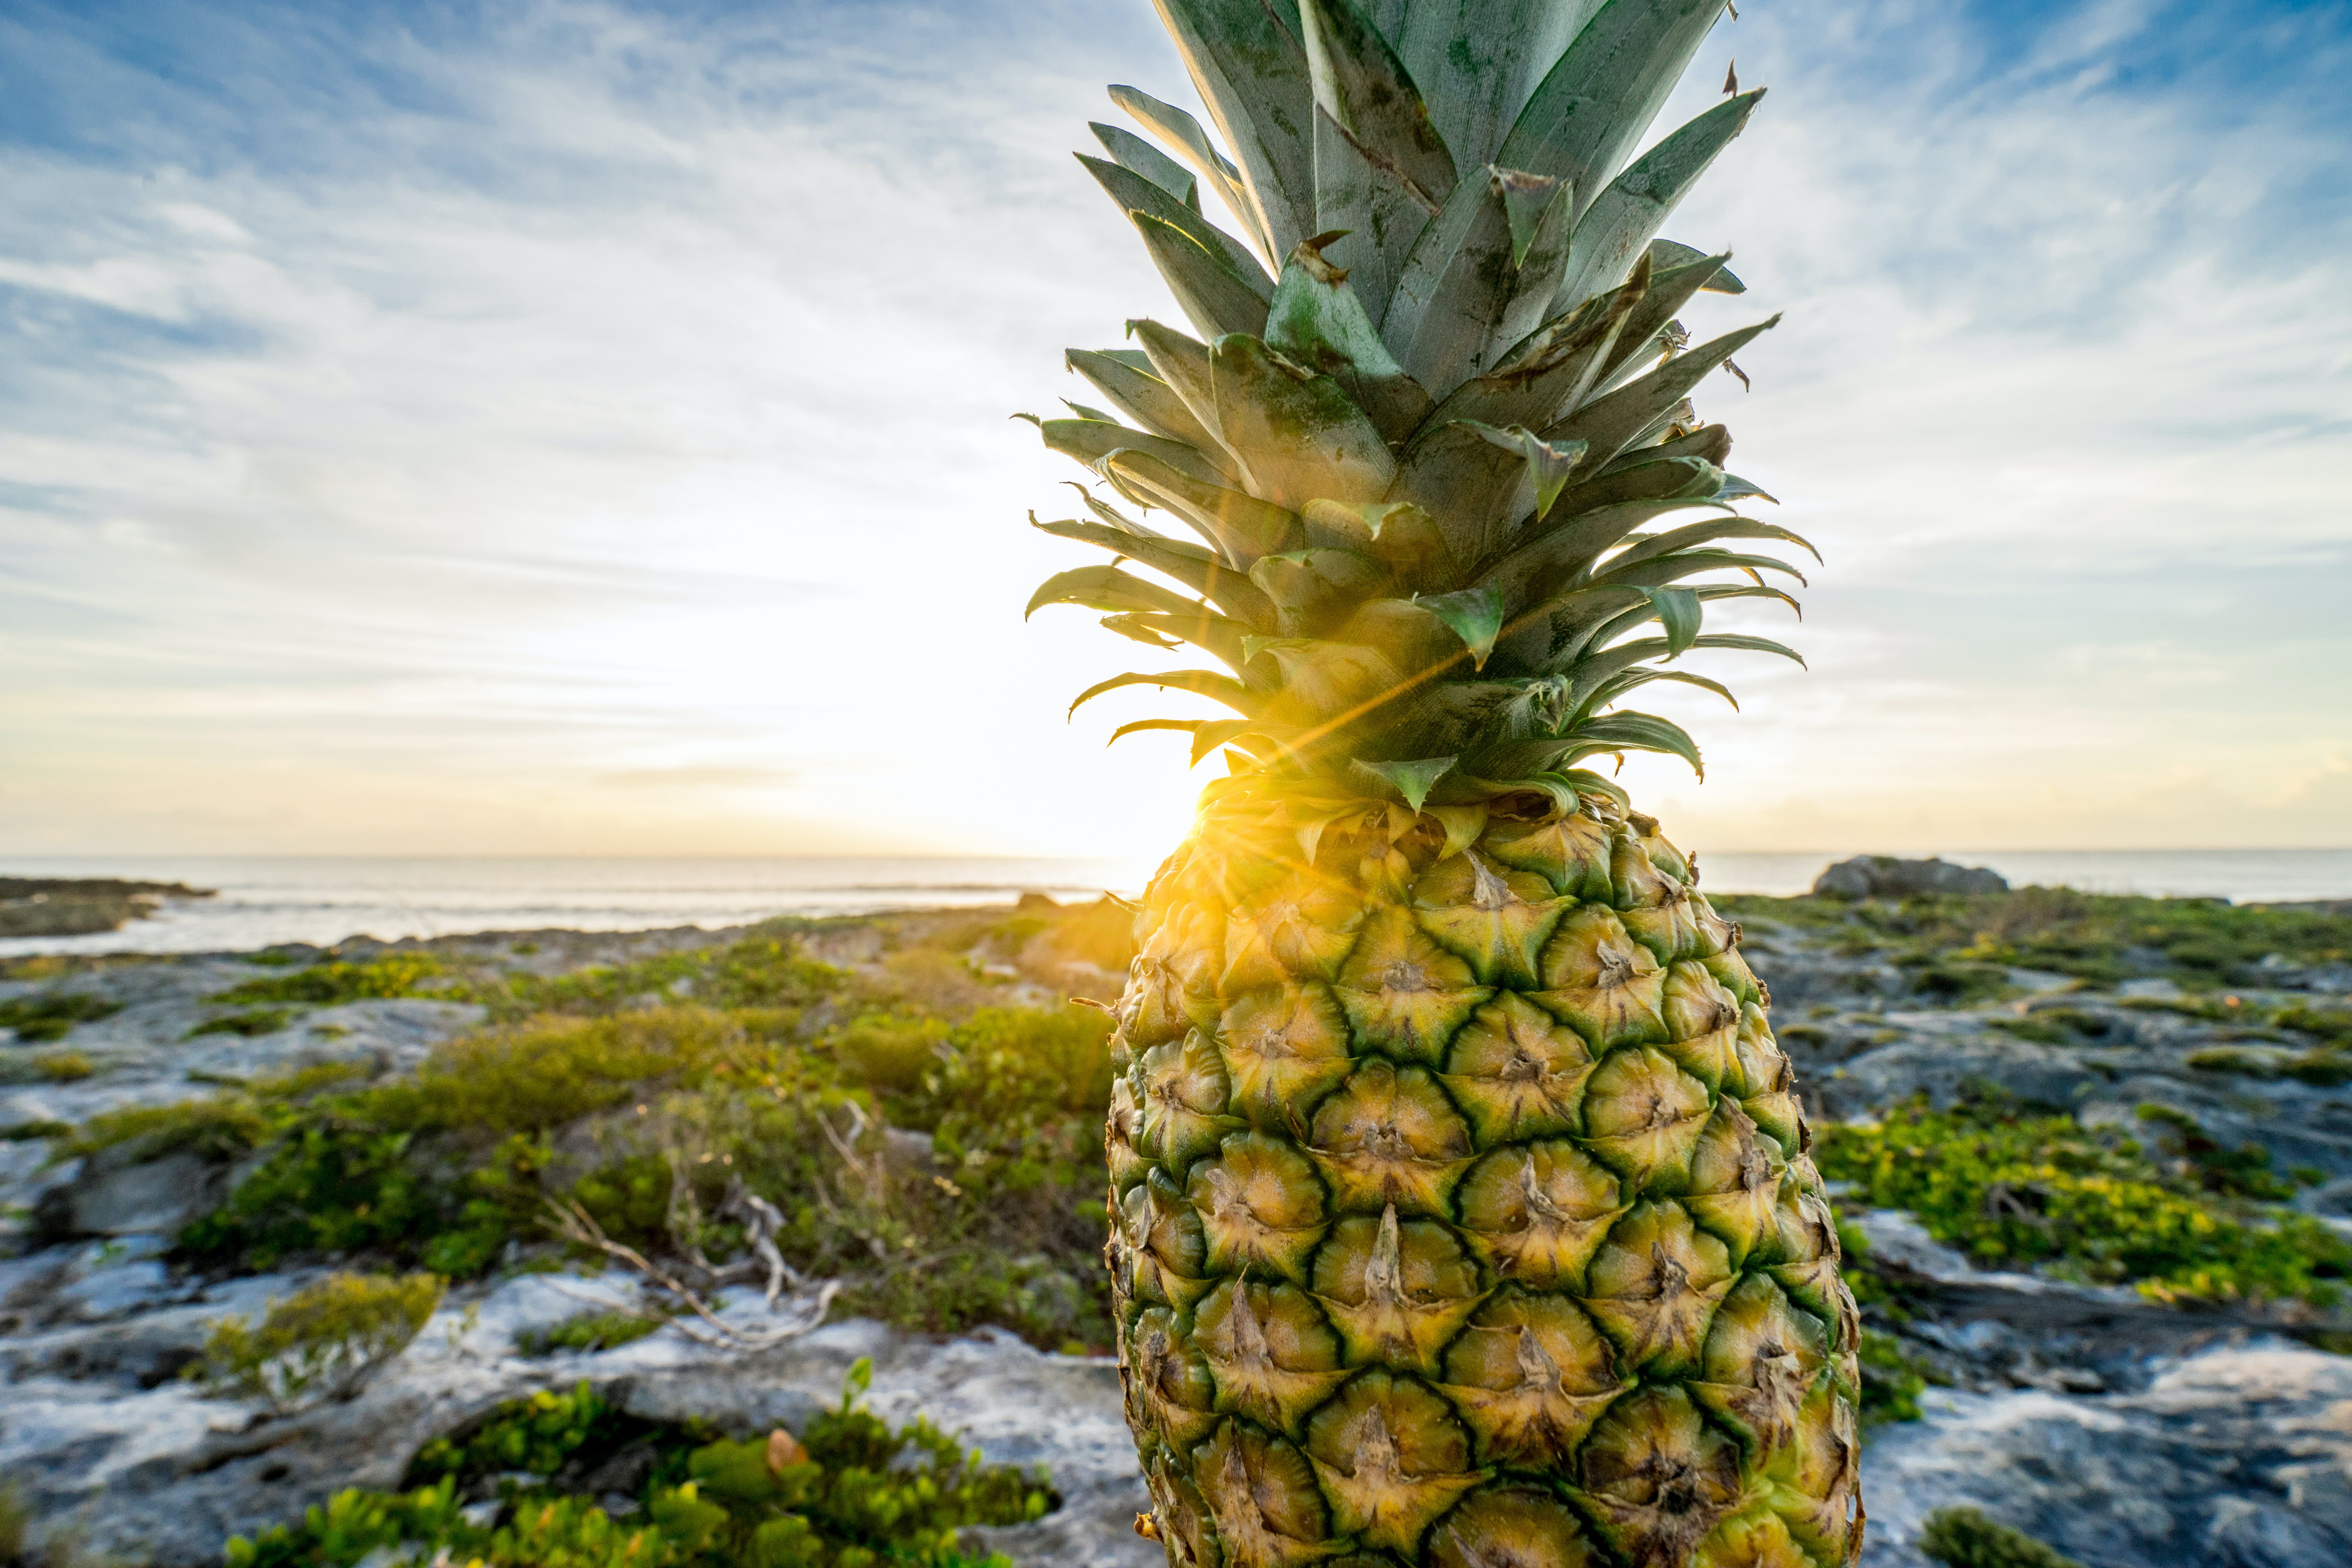 Yellow Pineapple Near Green Plants and Sea Close-up Photography